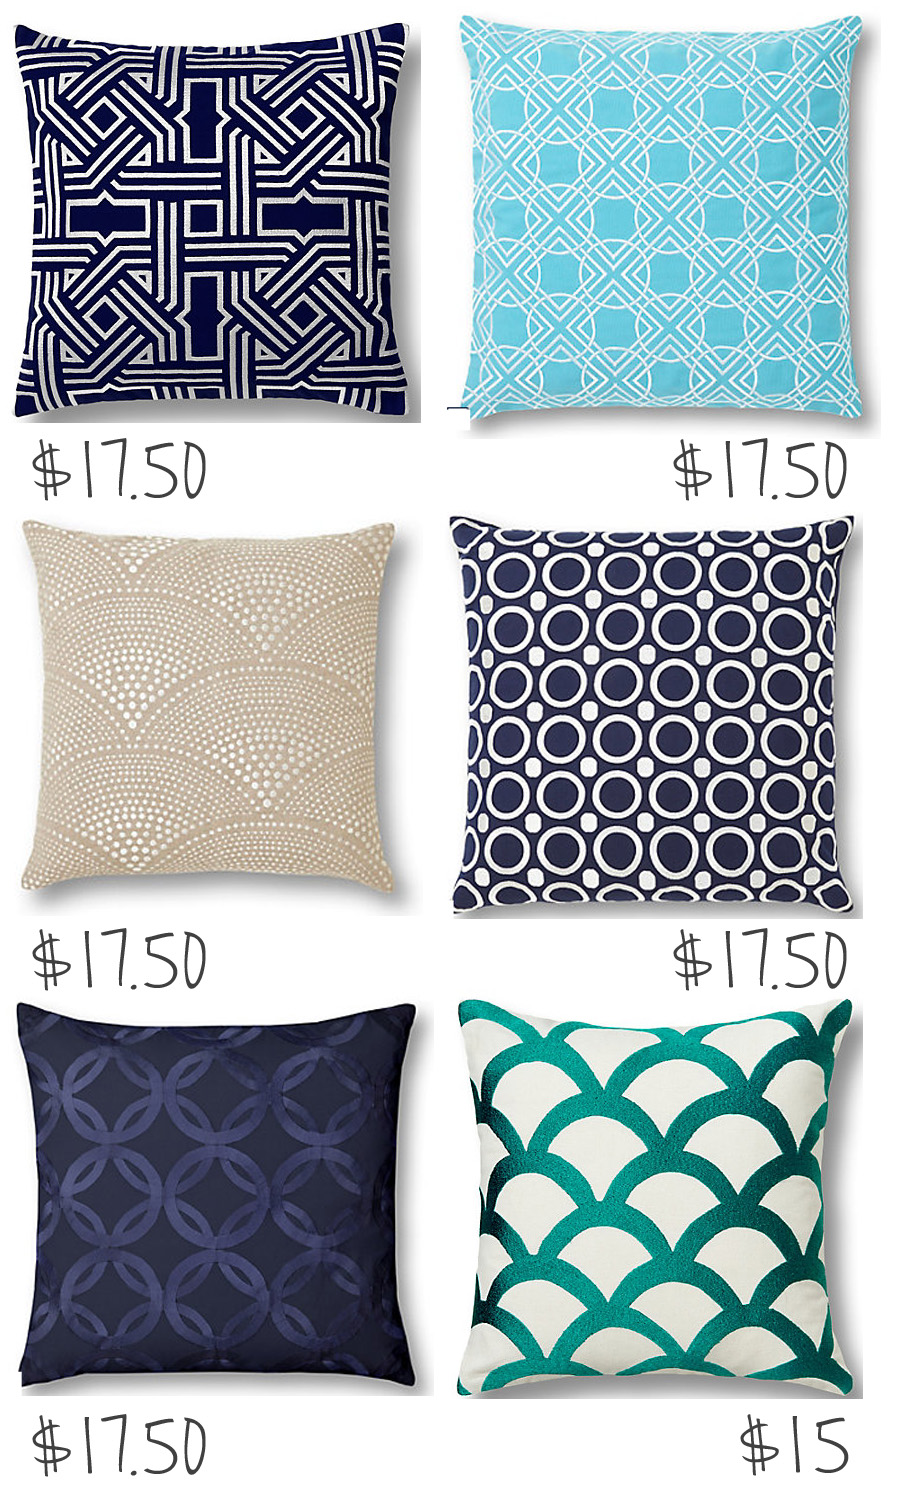 Olive Lane: Graphic Prints + Throw Pillows + Bargain = Love